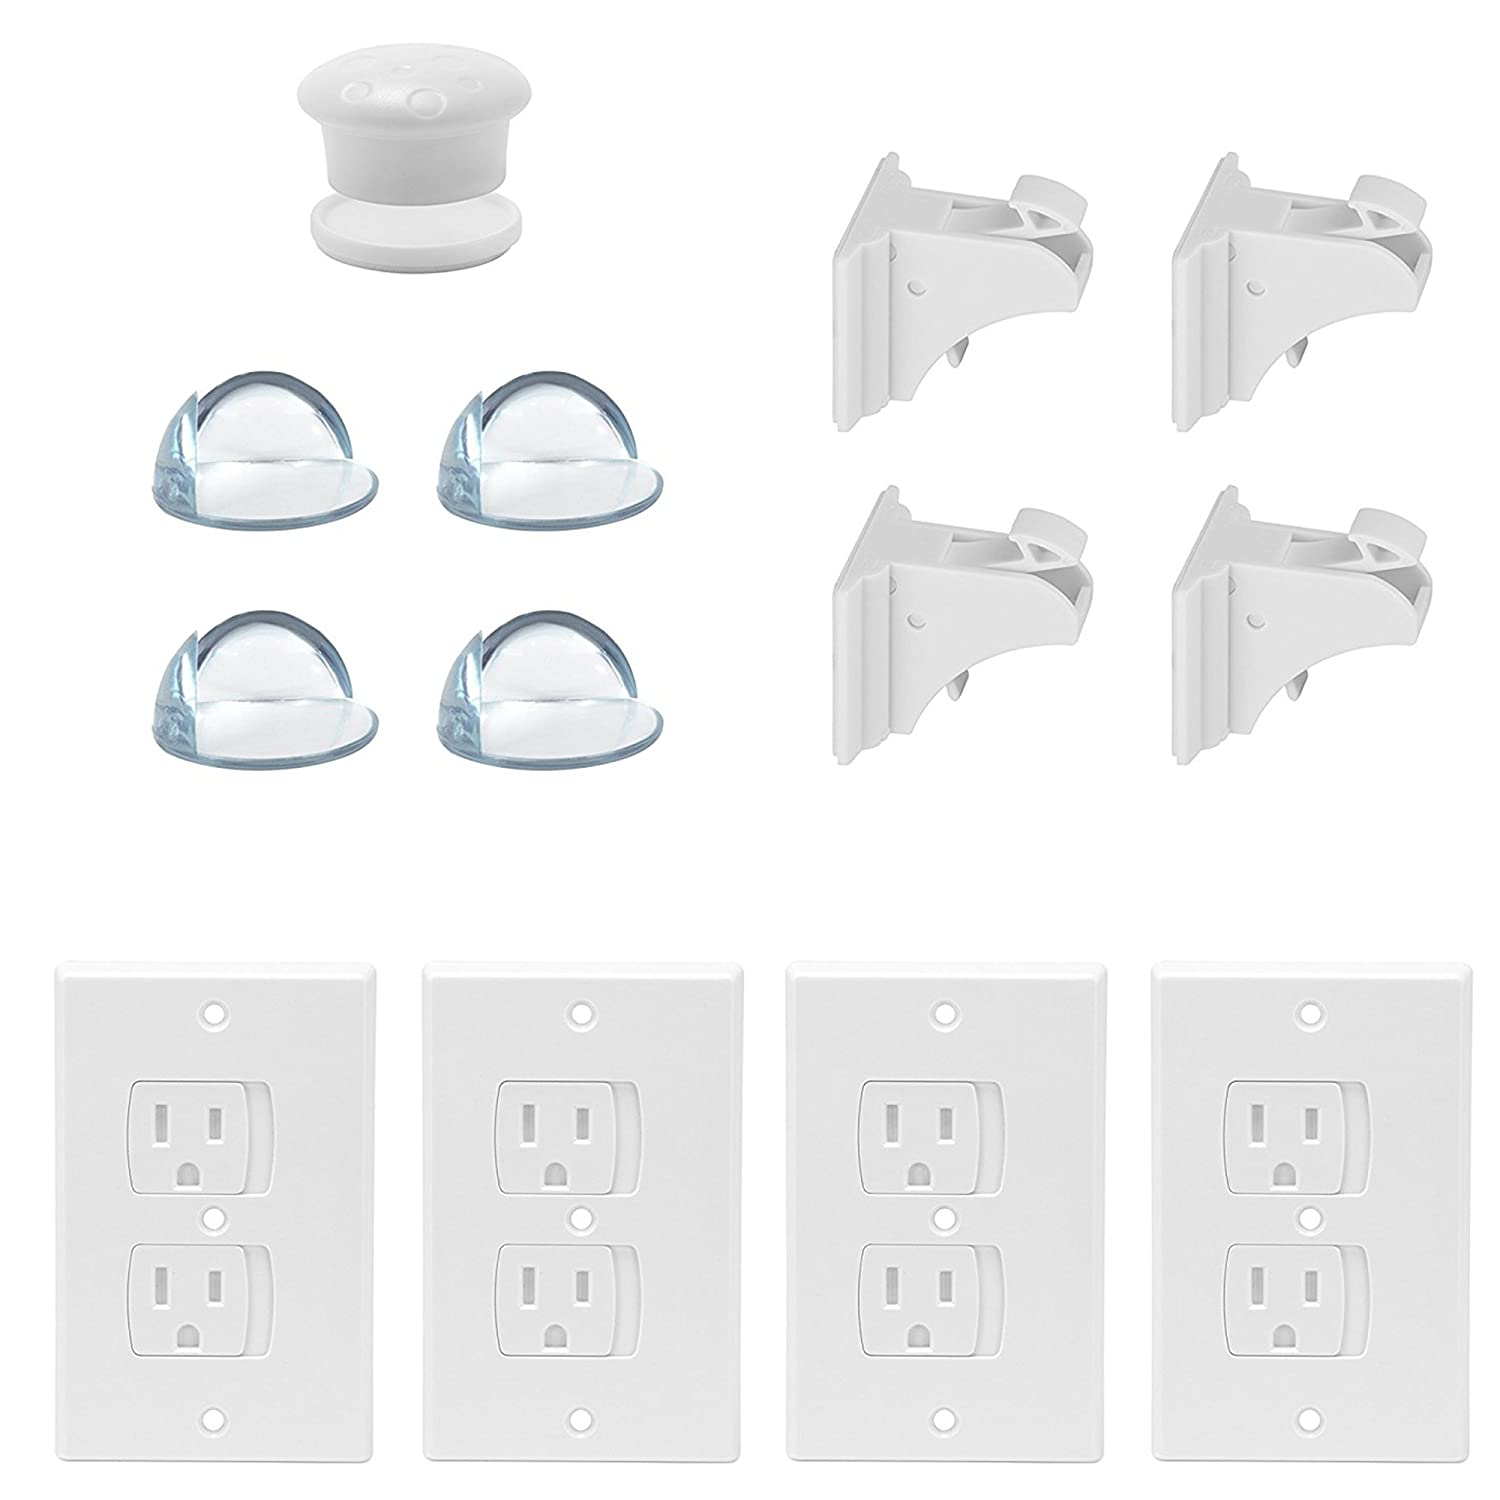 Amazon.com : Child Safety Kit - Outlet Covers, Corner Bumper ...